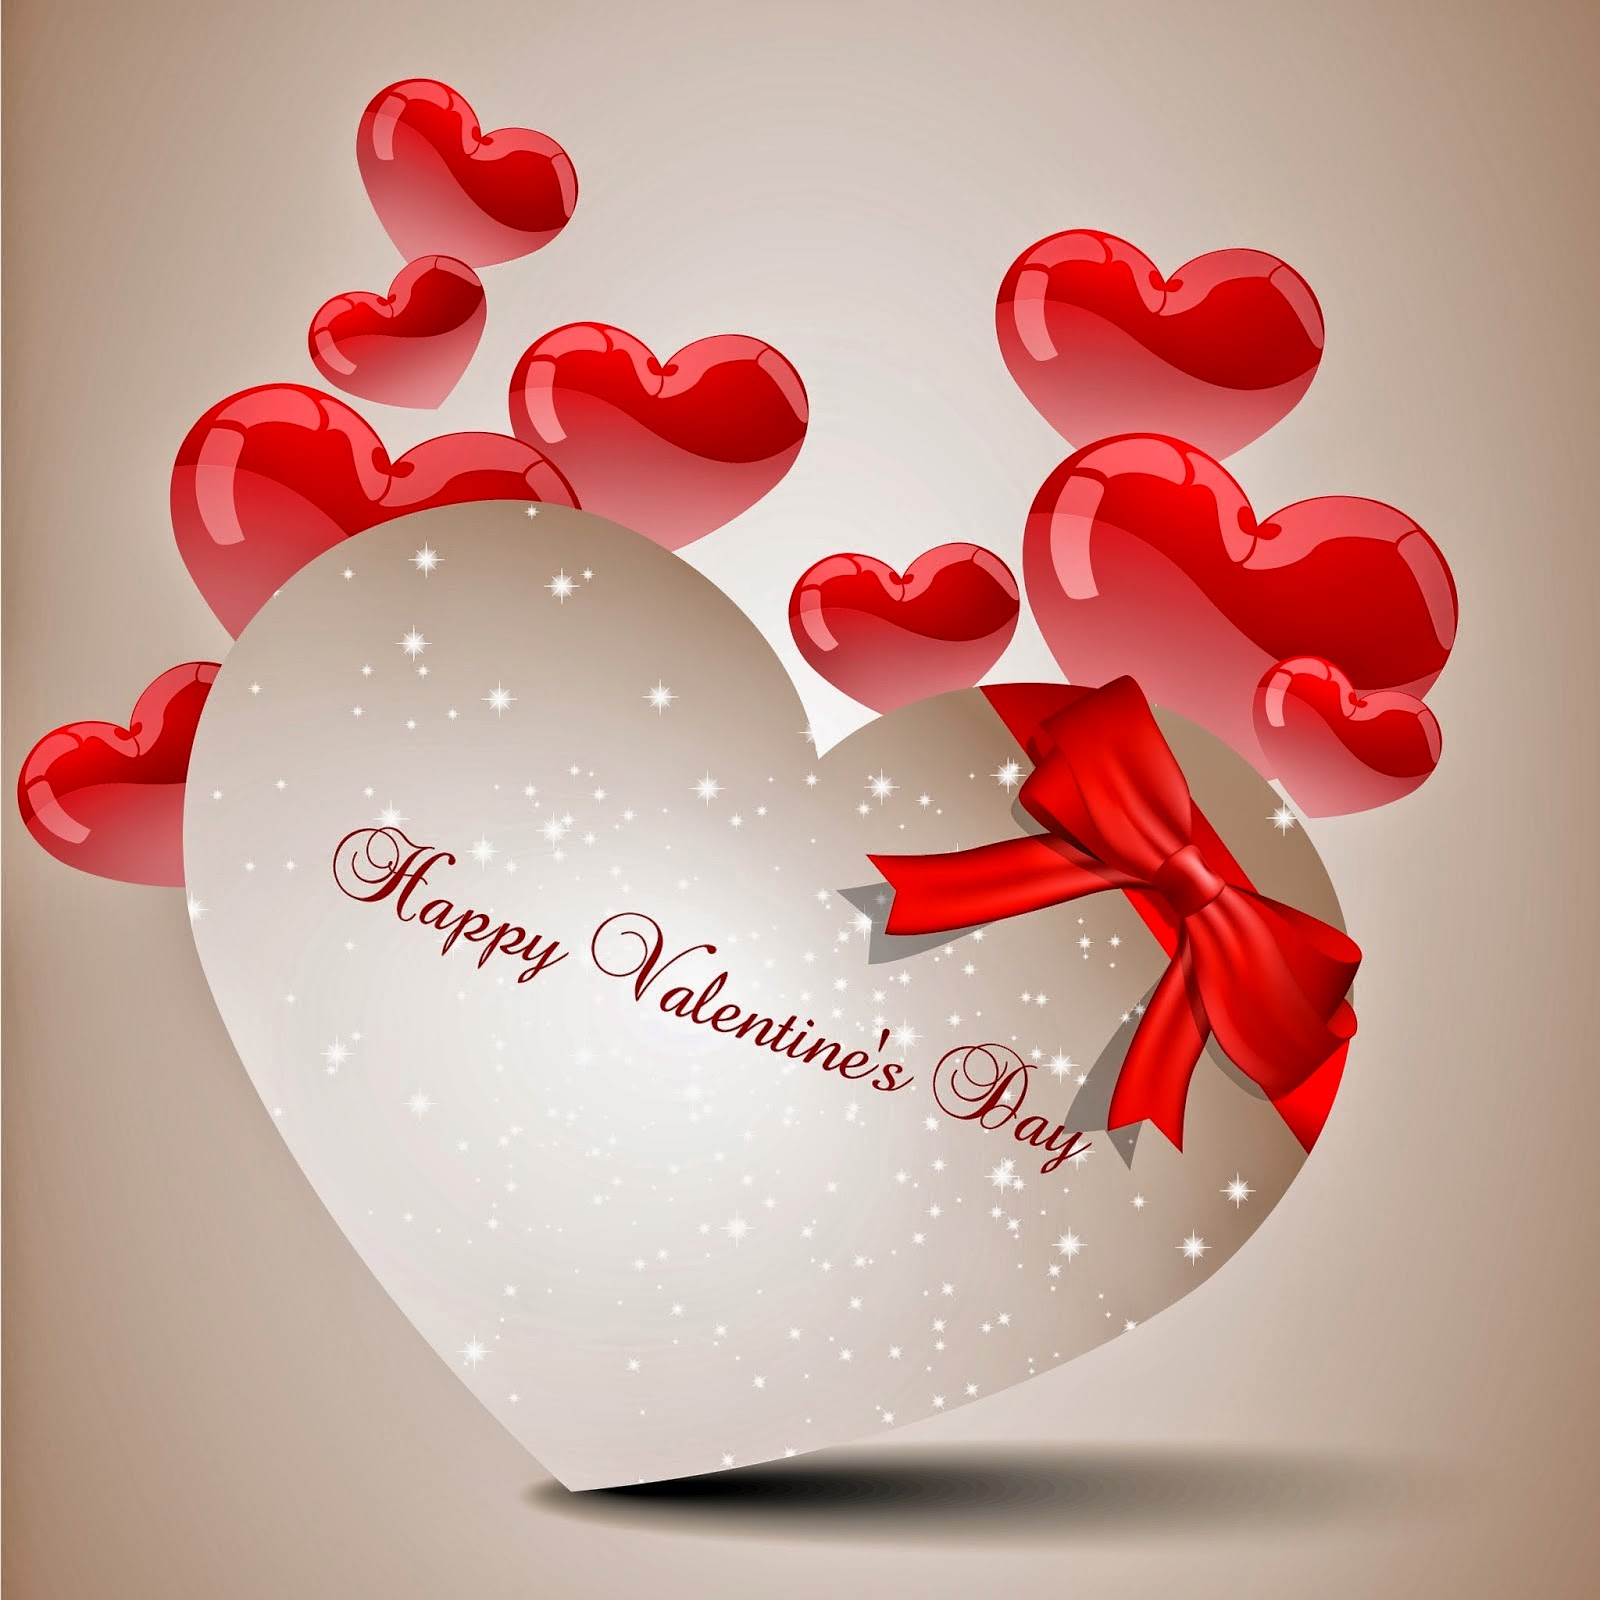 Valentine day 2015 museum gallery listings for aug 15 21 happy valentines day 2015 greetings wallpapers images sms m4hsunfo